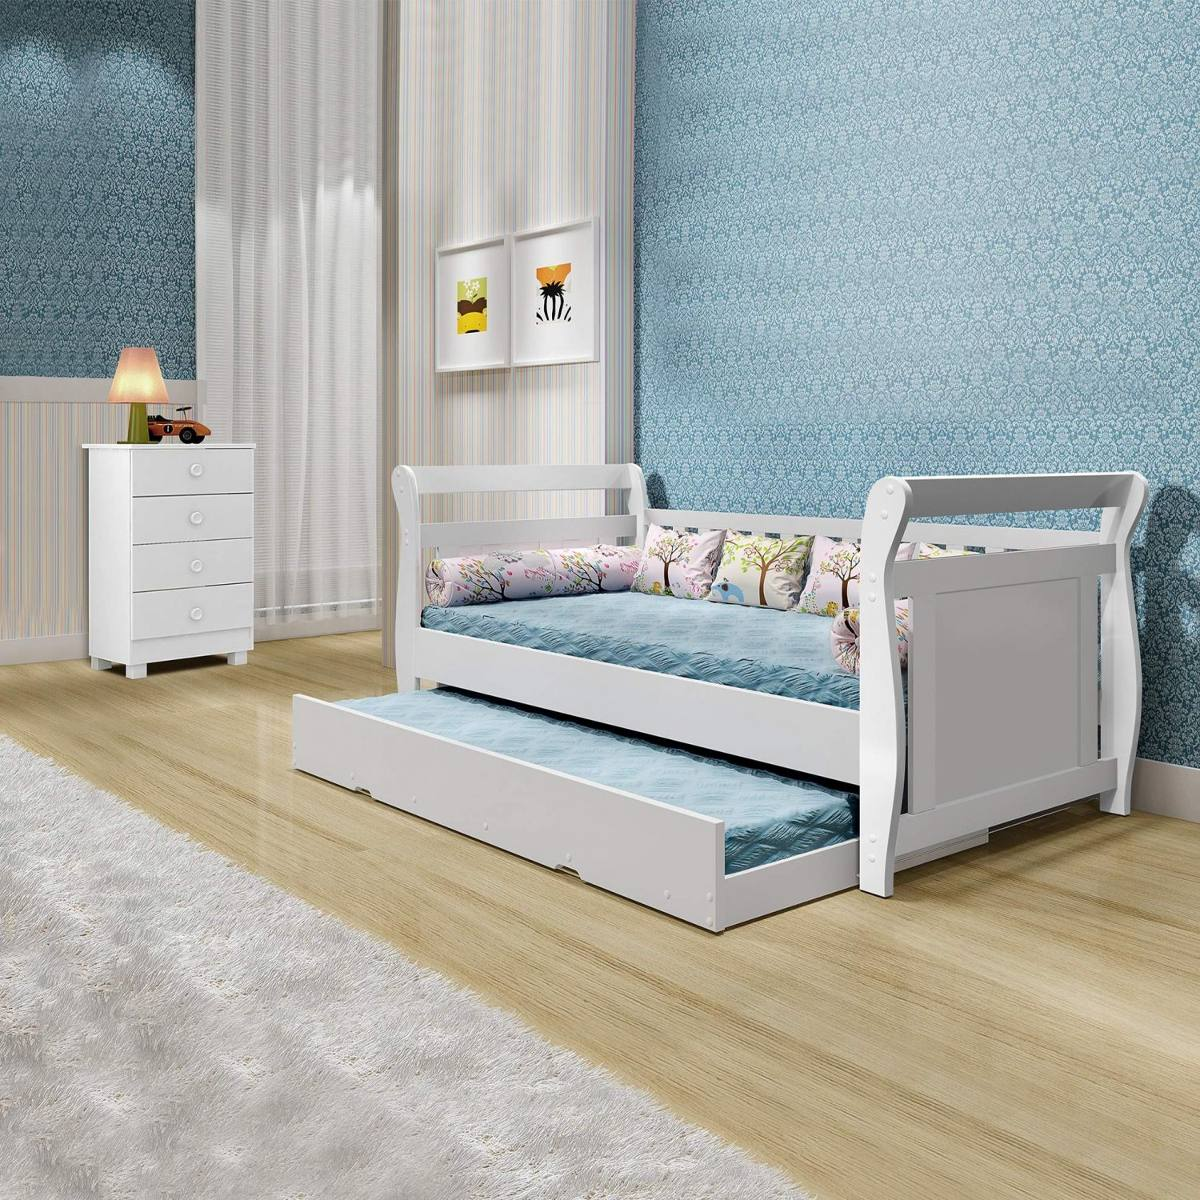 Children's bunk bed for blue bedroom